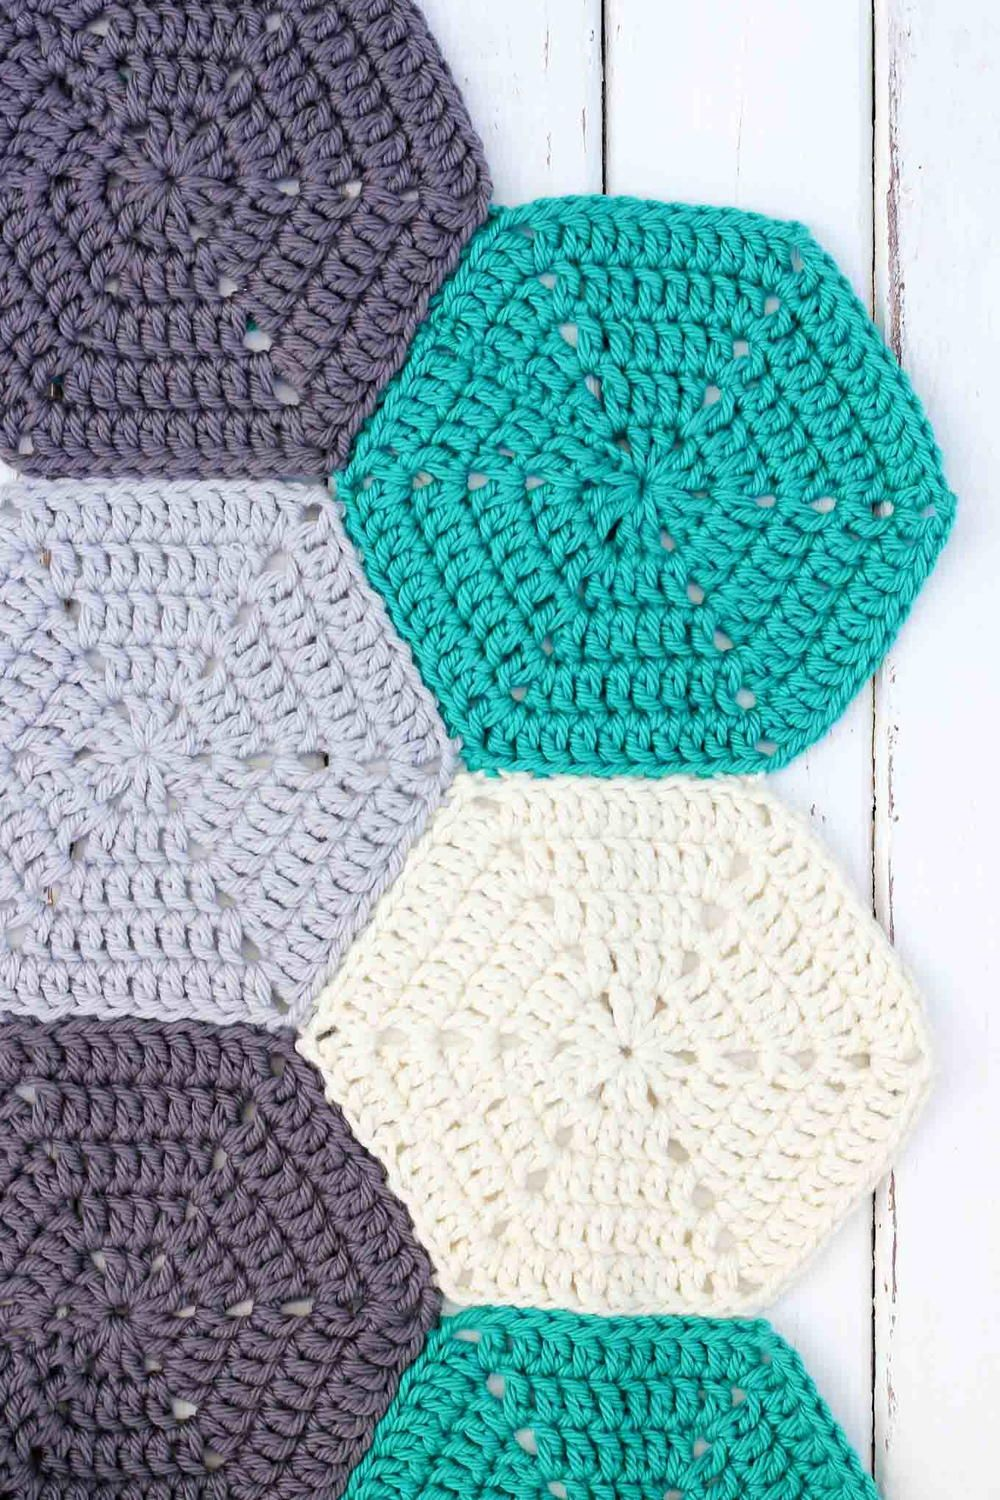 How to Join Crochet Hexagons With Invisible Seams | Pinterest